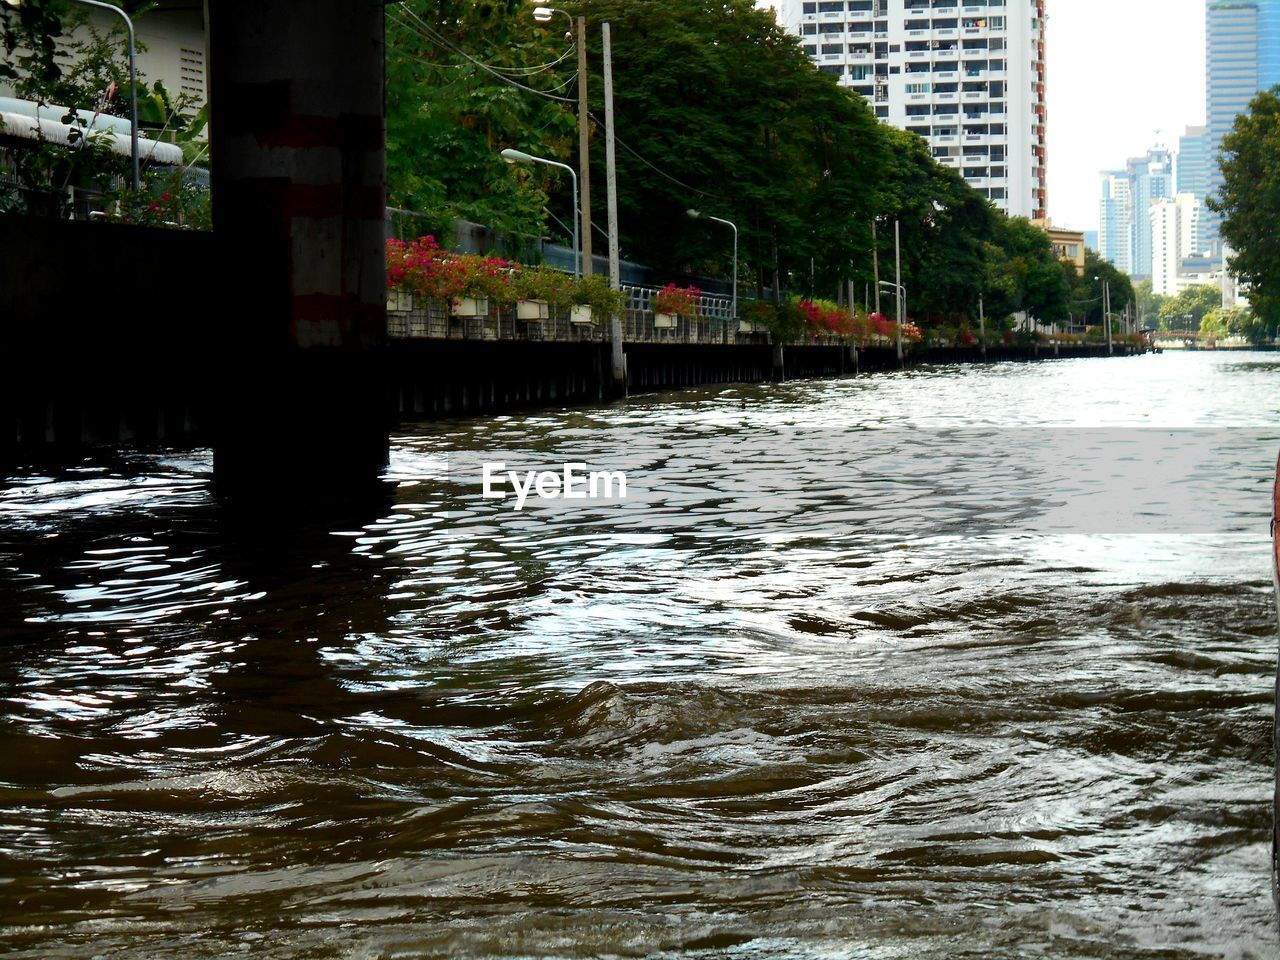 water, architecture, waterfront, built structure, building exterior, nature, tree, no people, river, day, city, reflection, building, plant, outdoors, rippled, bridge, flowing water, connection, flowing